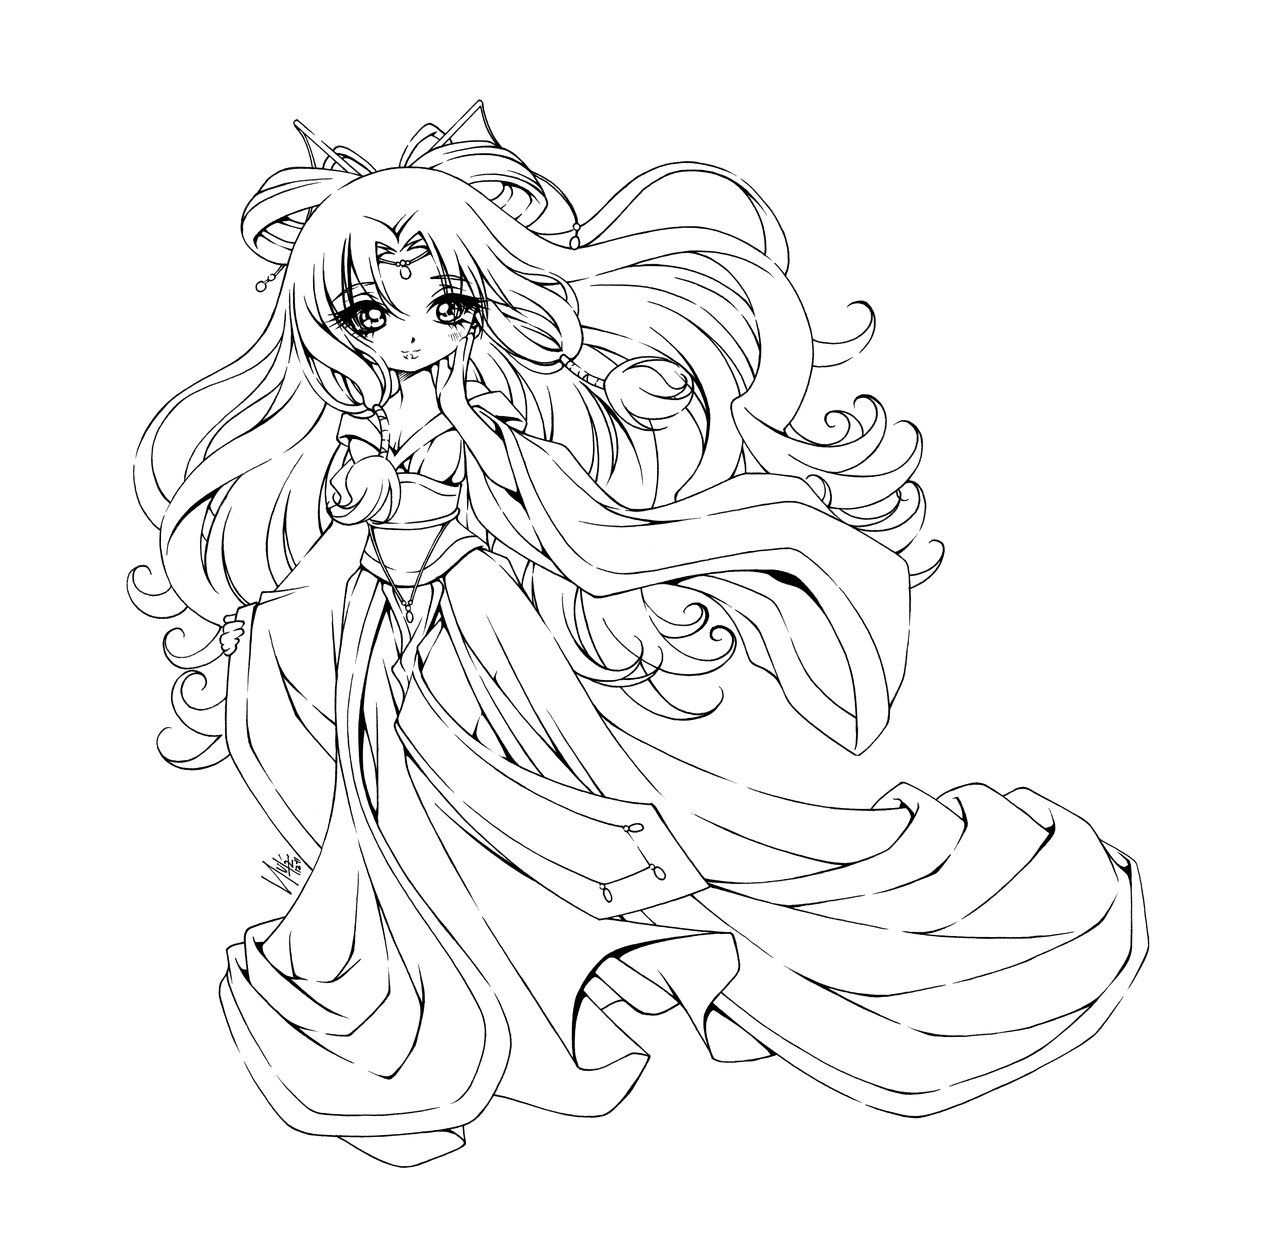 Li Dong Hua By Sureya On Deviantart Chibi Coloring Pages